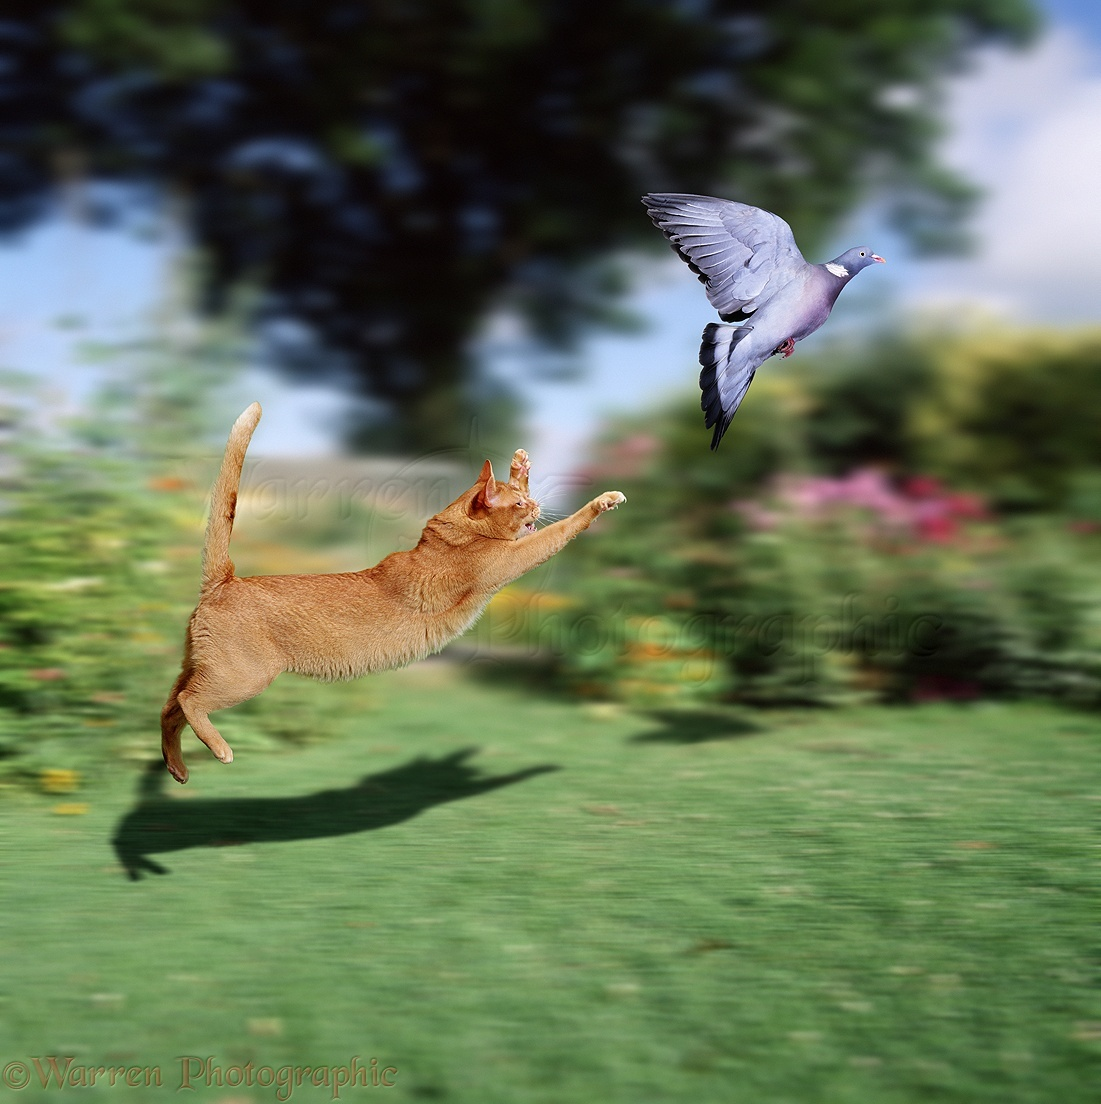 http://www.warrenphotographic.co.uk/photography/bigs/03623-Ginger-cat-leaping-at-Wood-Pigeon.jpg